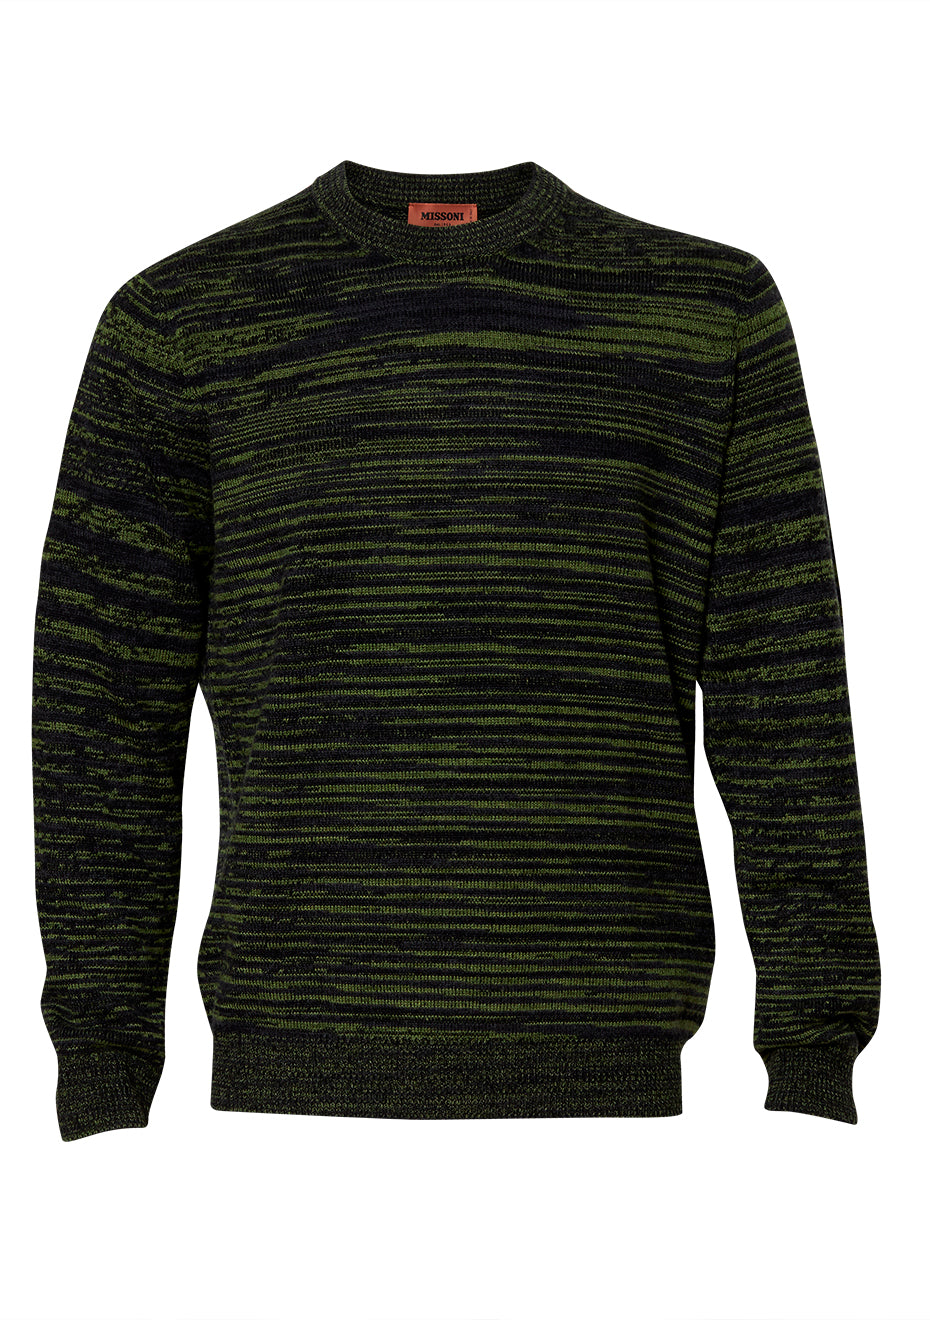 Navy & Green Cashmere Crew Neck